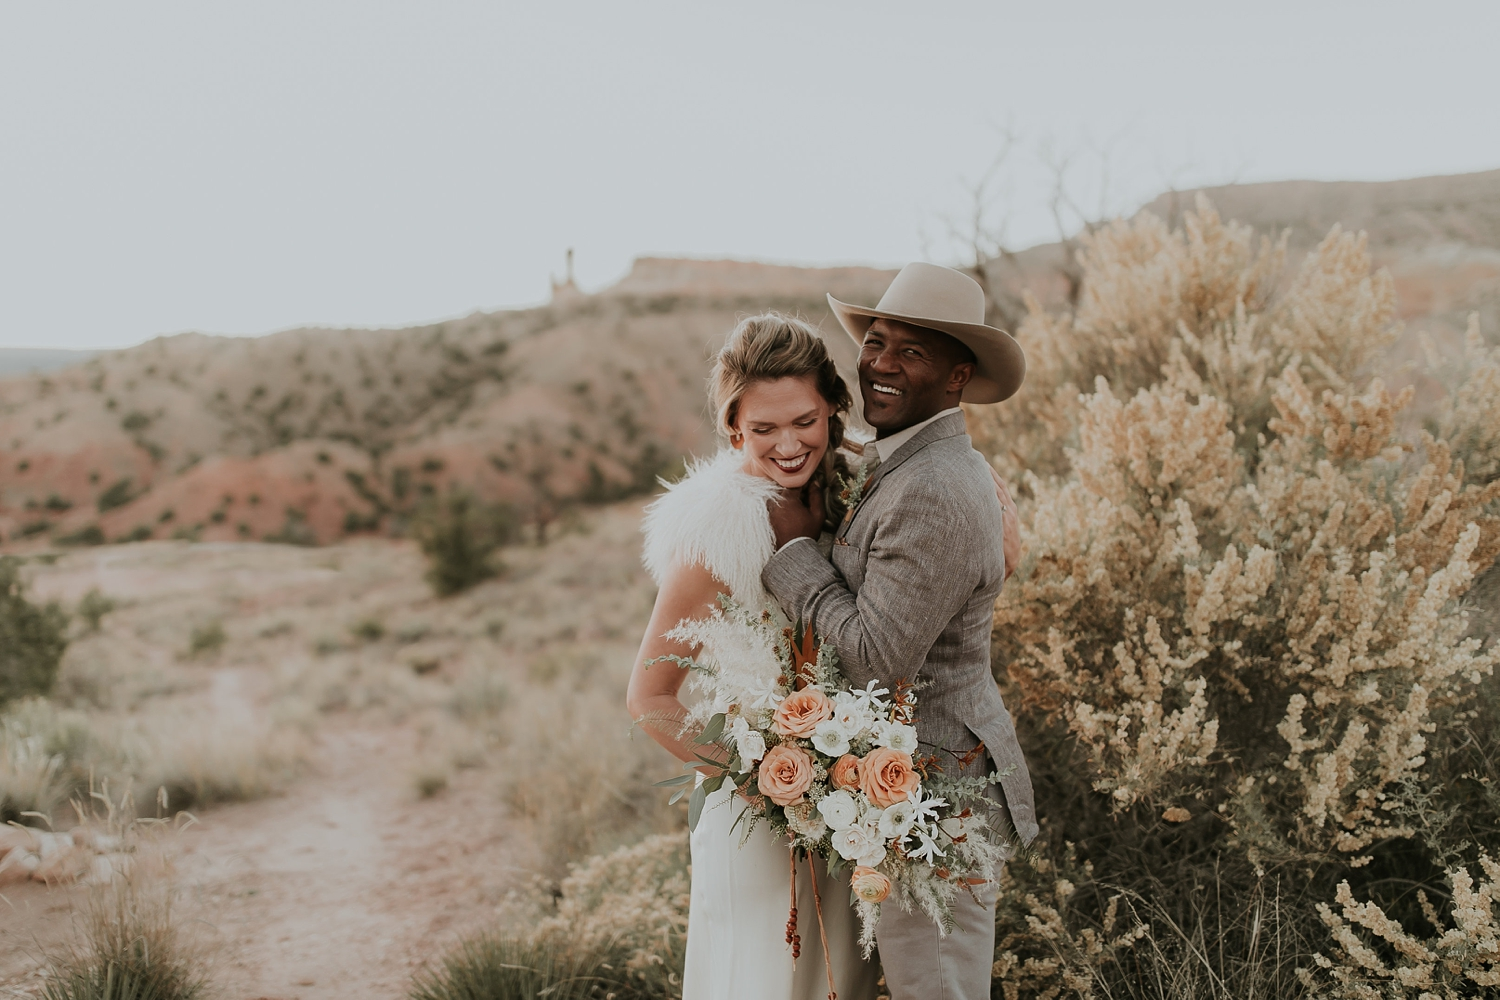 Alicia+lucia+photography+-+albuquerque+wedding+photographer+-+santa+fe+wedding+photography+-+new+mexico+wedding+photographer+-+new+mexico+ghost+ranch+wedding+-+styled+wedding+shoot_0078.jpg